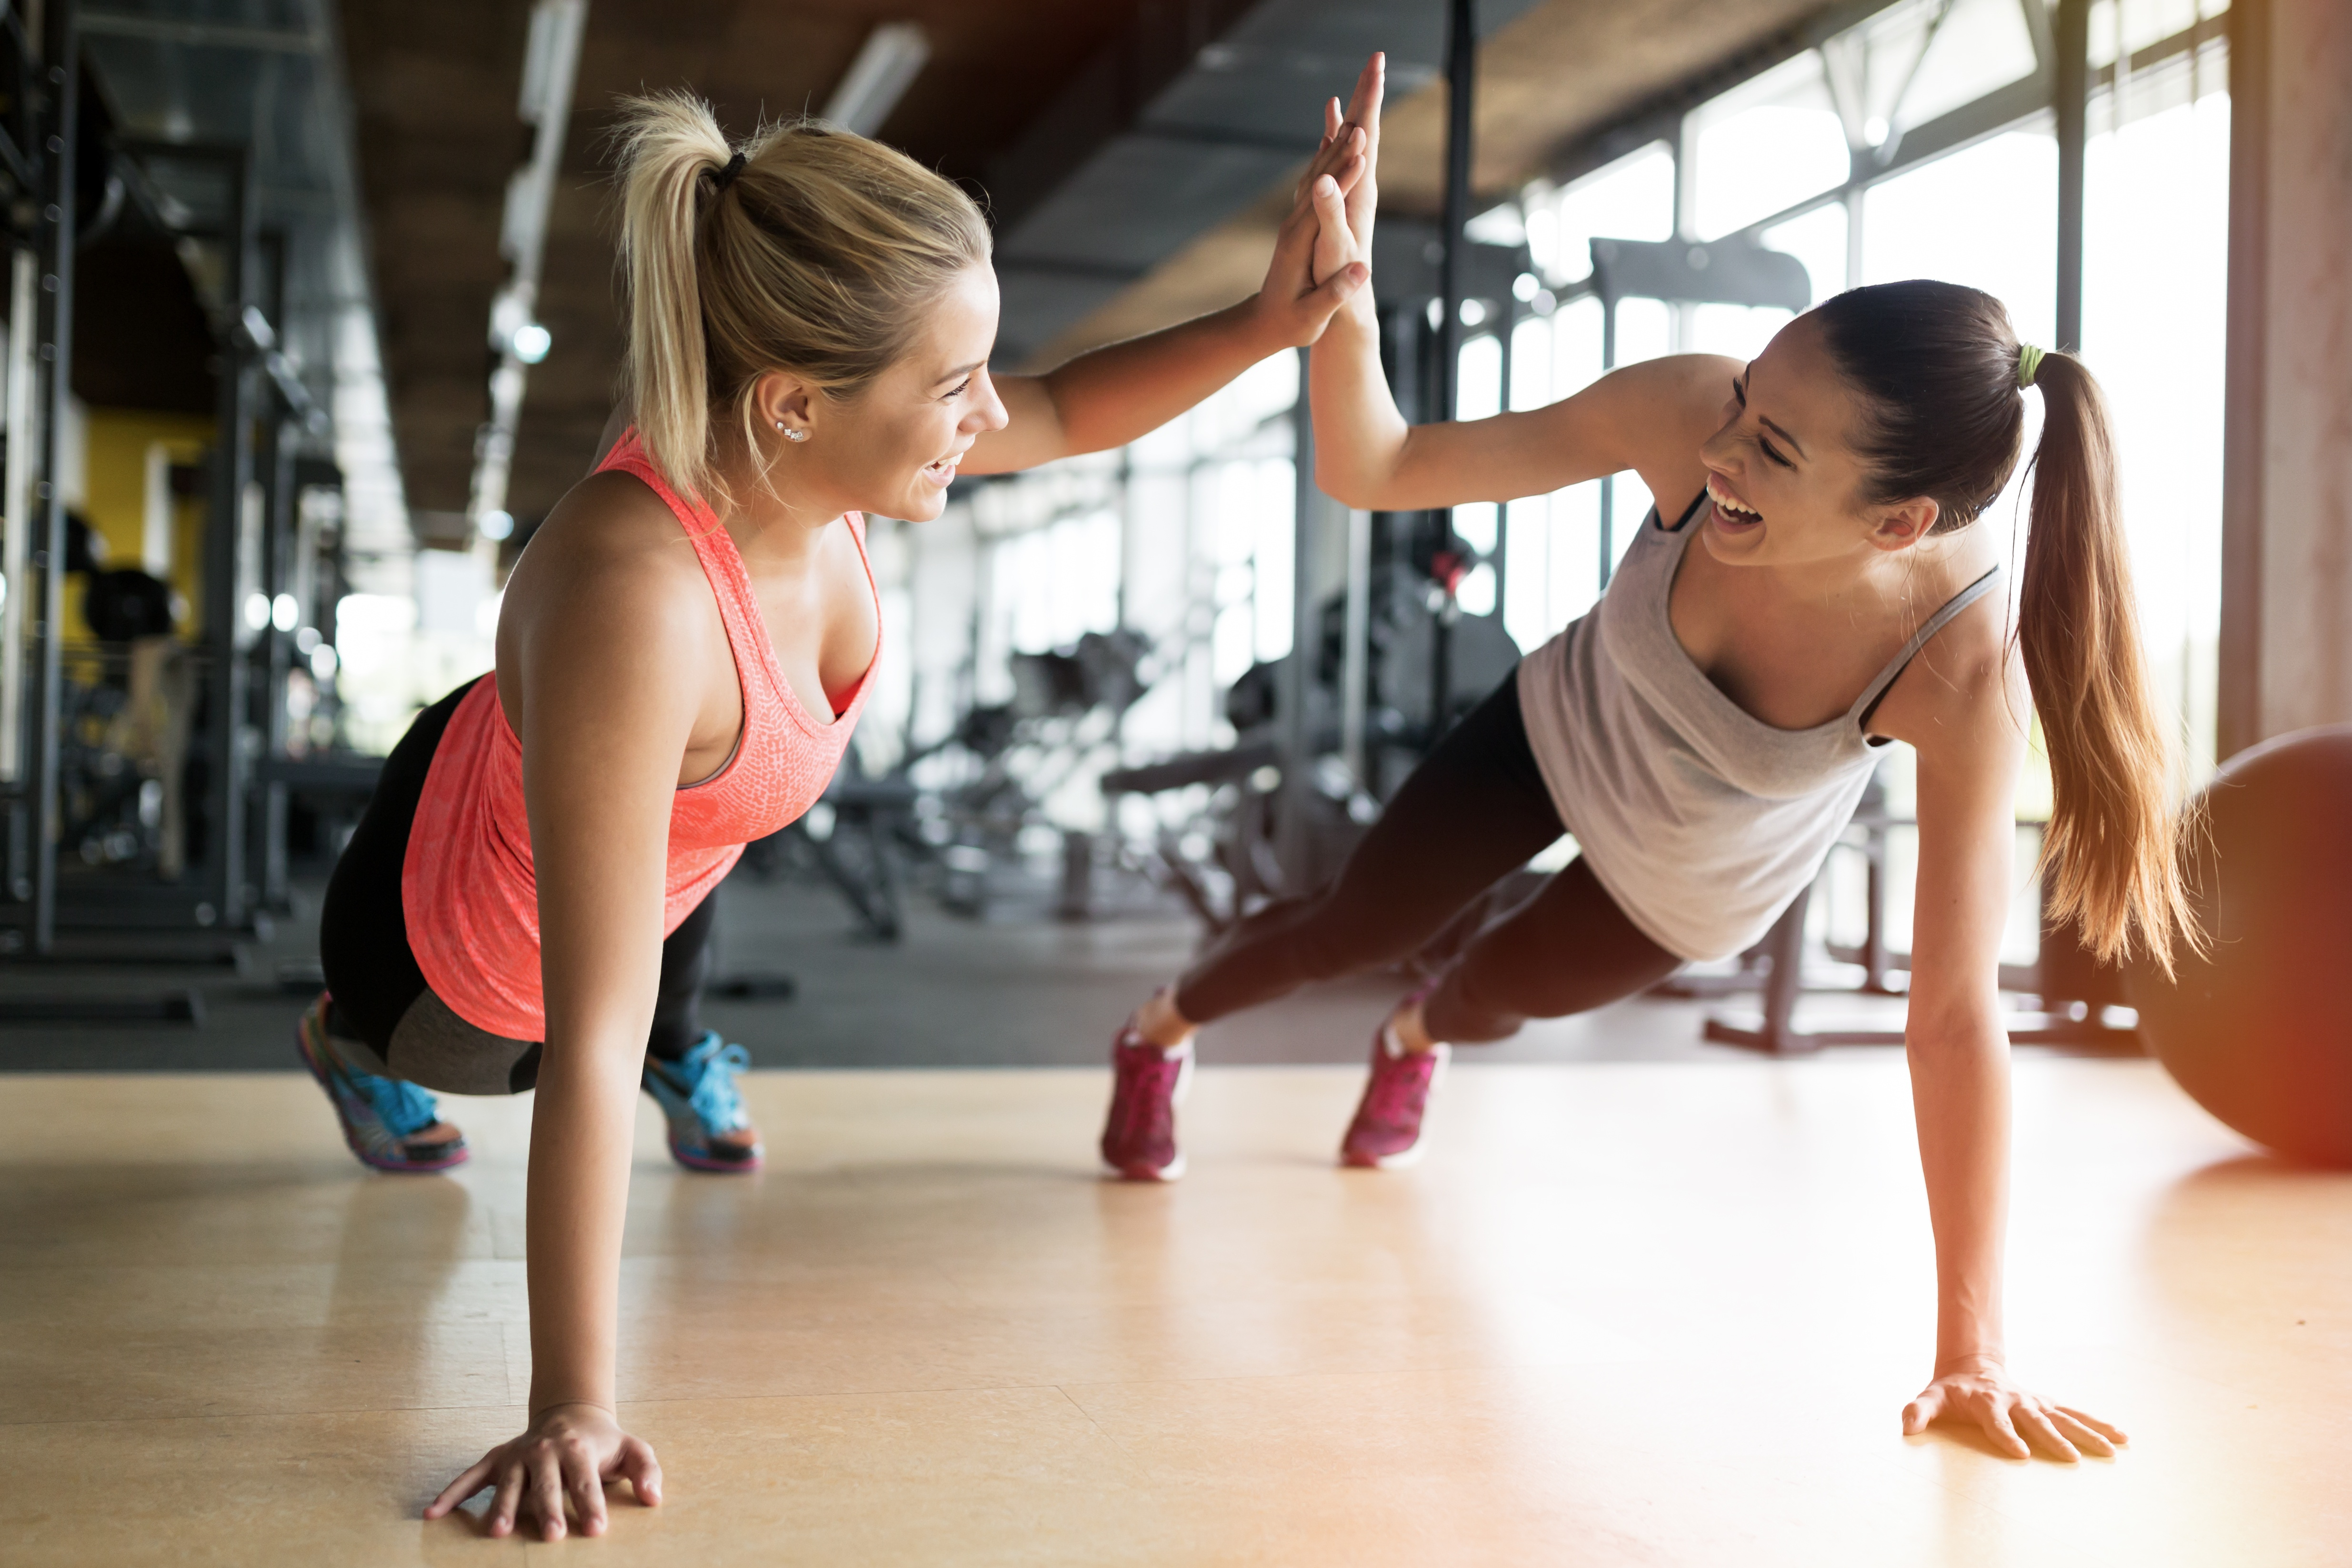 Increase Fitness Center Revenue With Texting